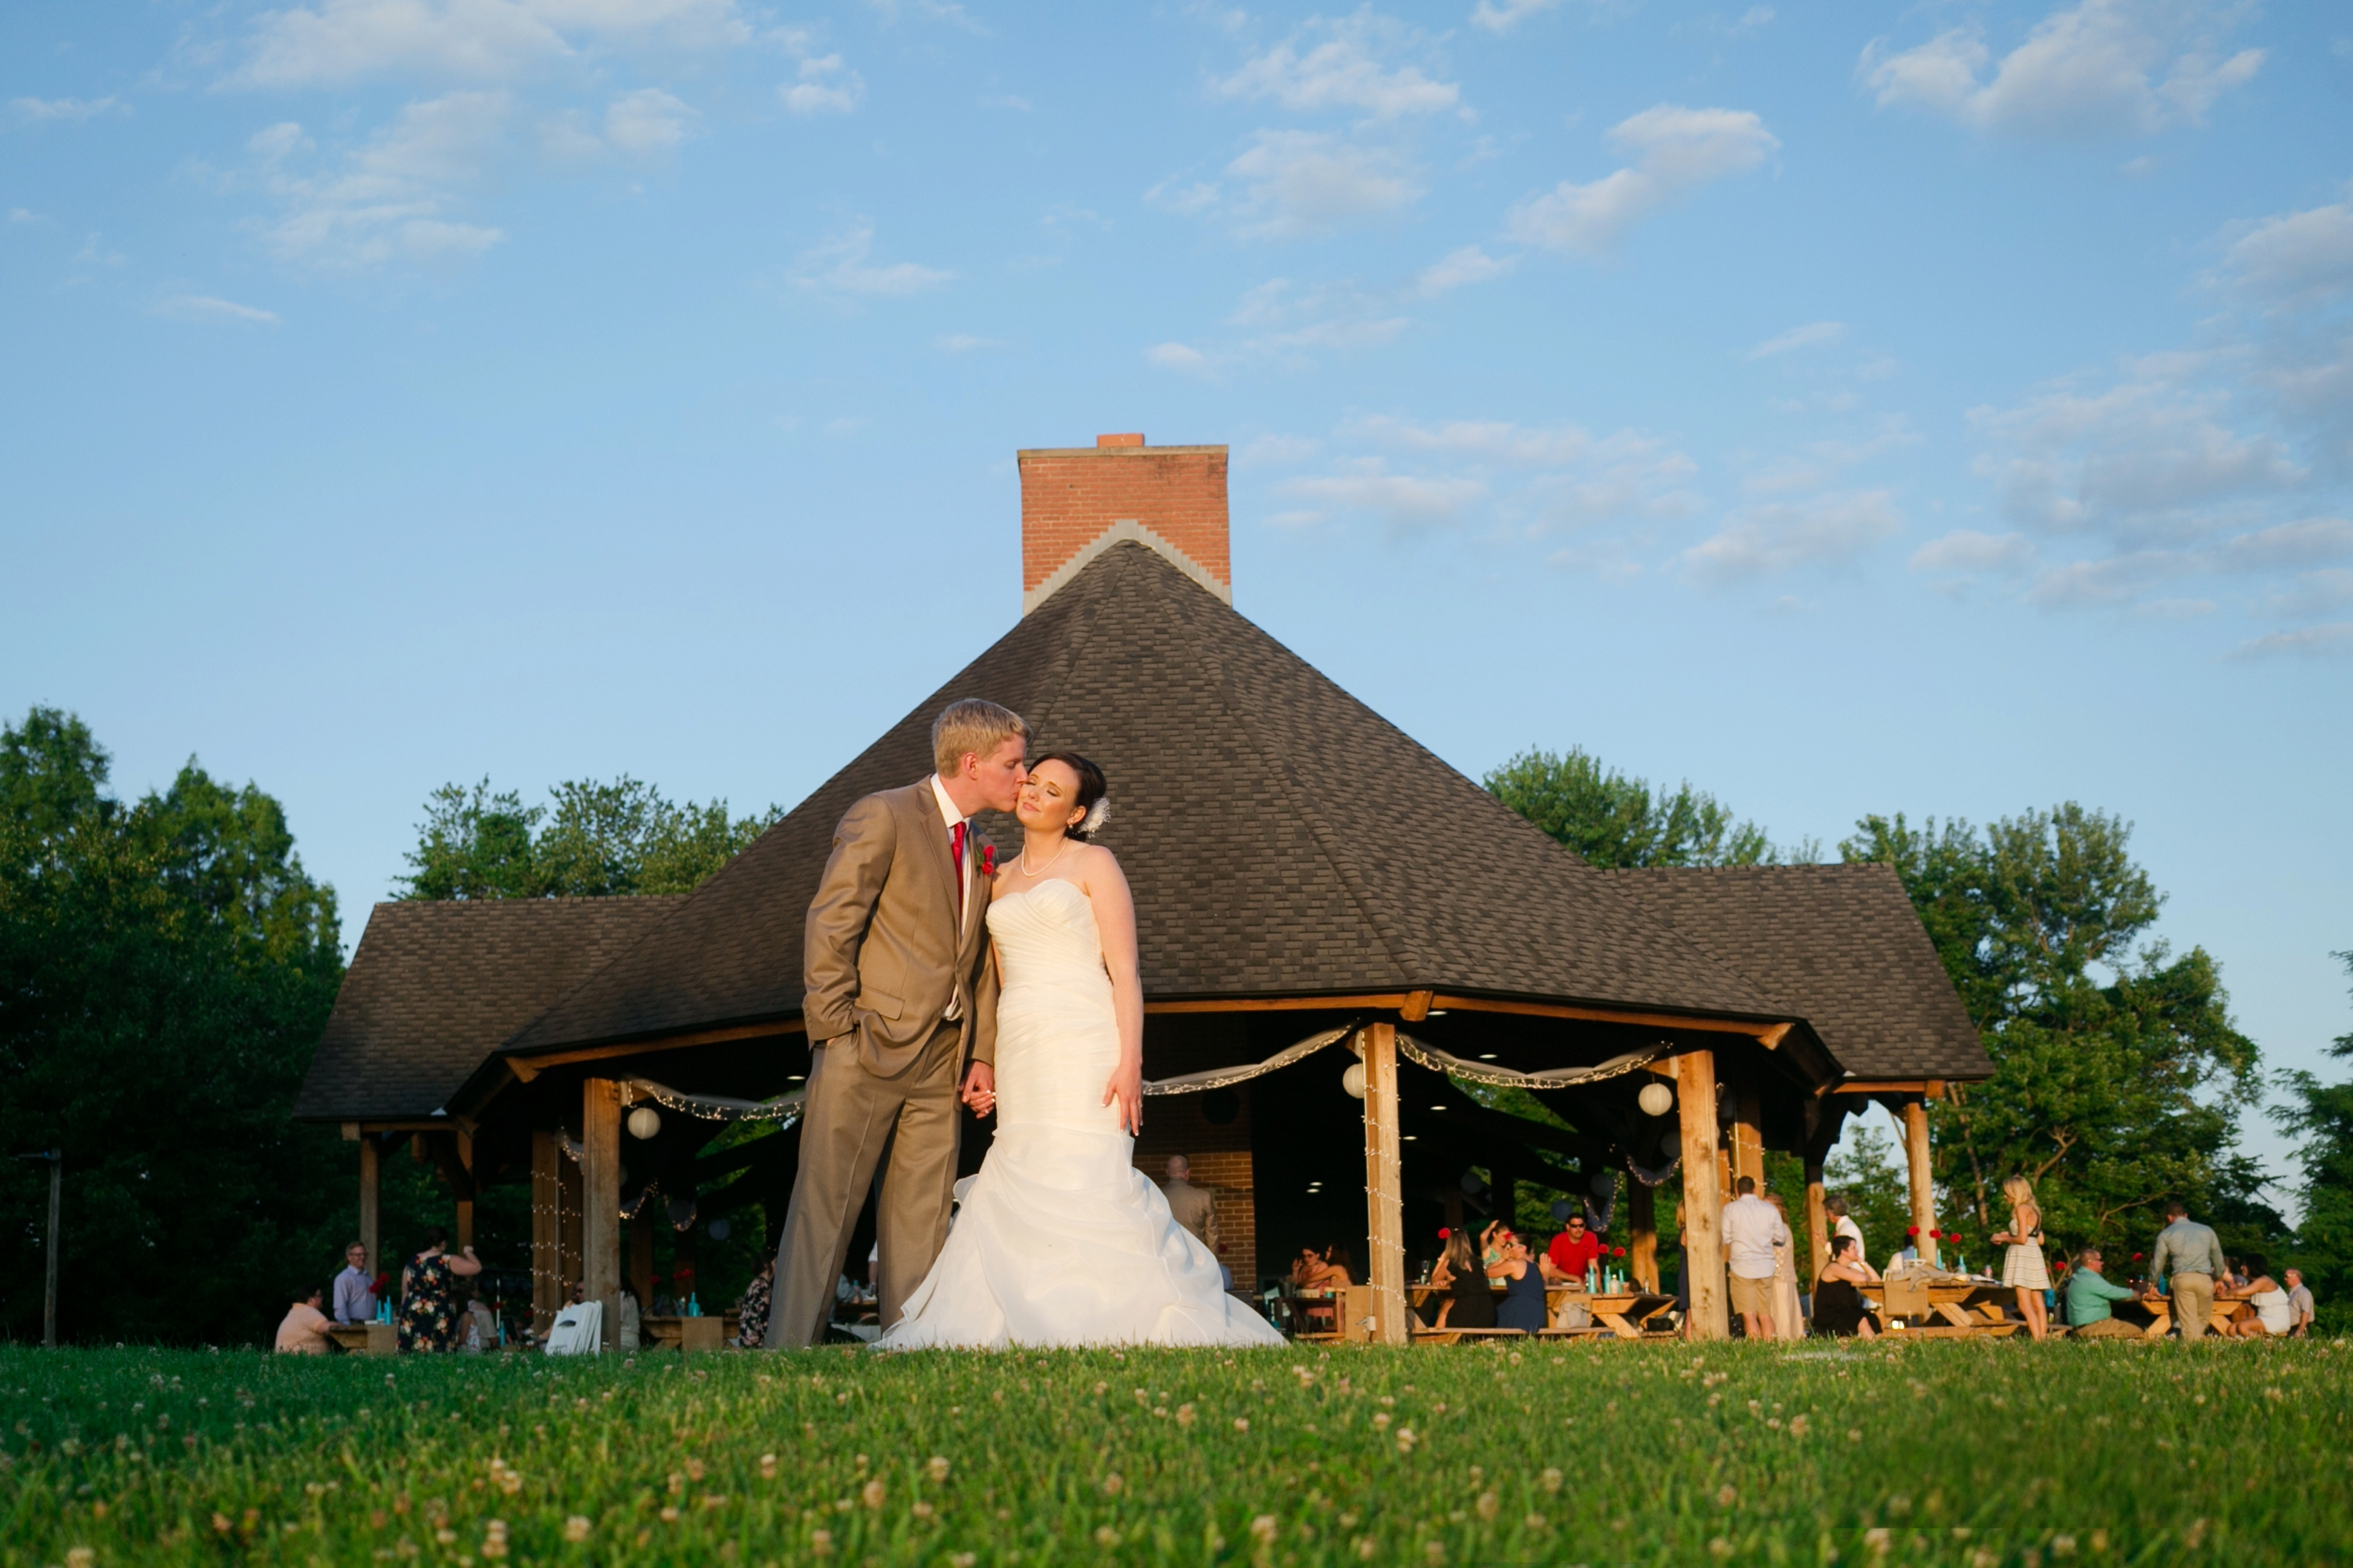 47-louisville-kentucky-parks-wedding.JPG